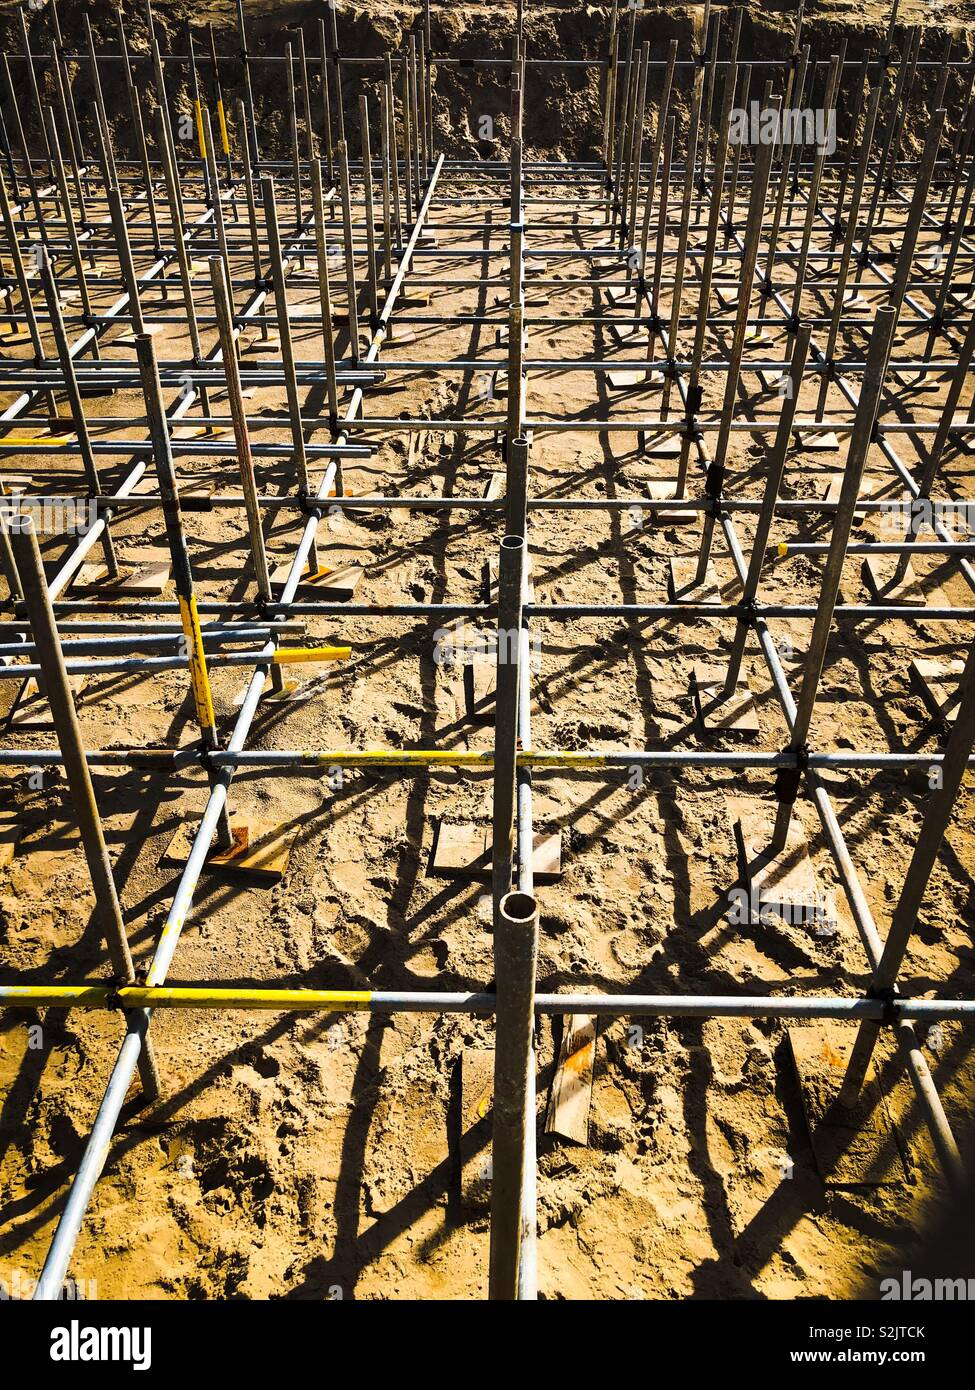 Network of scaffolding on a sandy beach - Stock Image